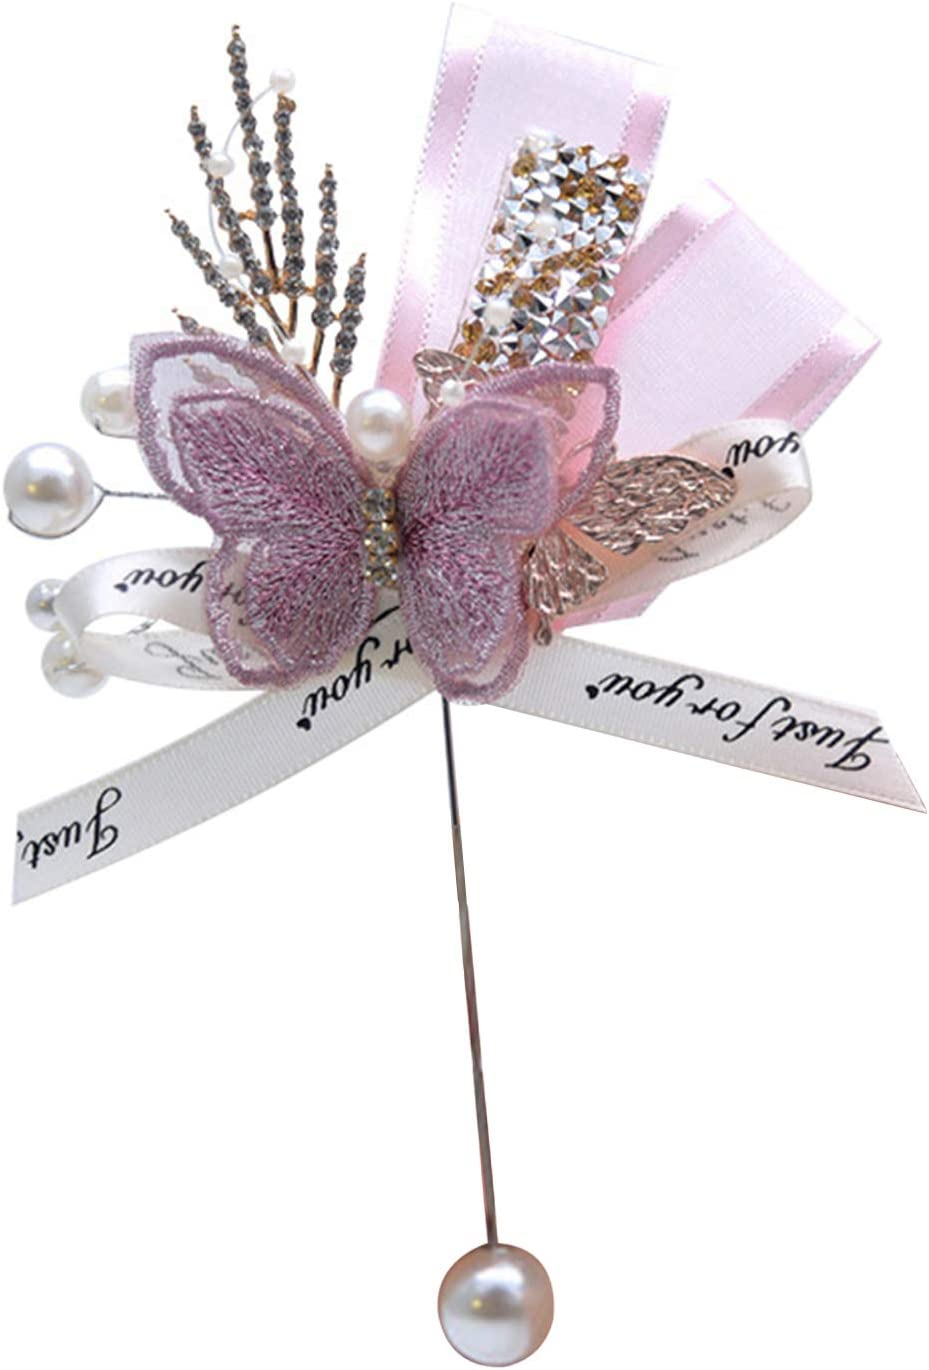 yuye-xthriv Max 45% OFF List price Groom Butterfly Brooch Pin Corsage